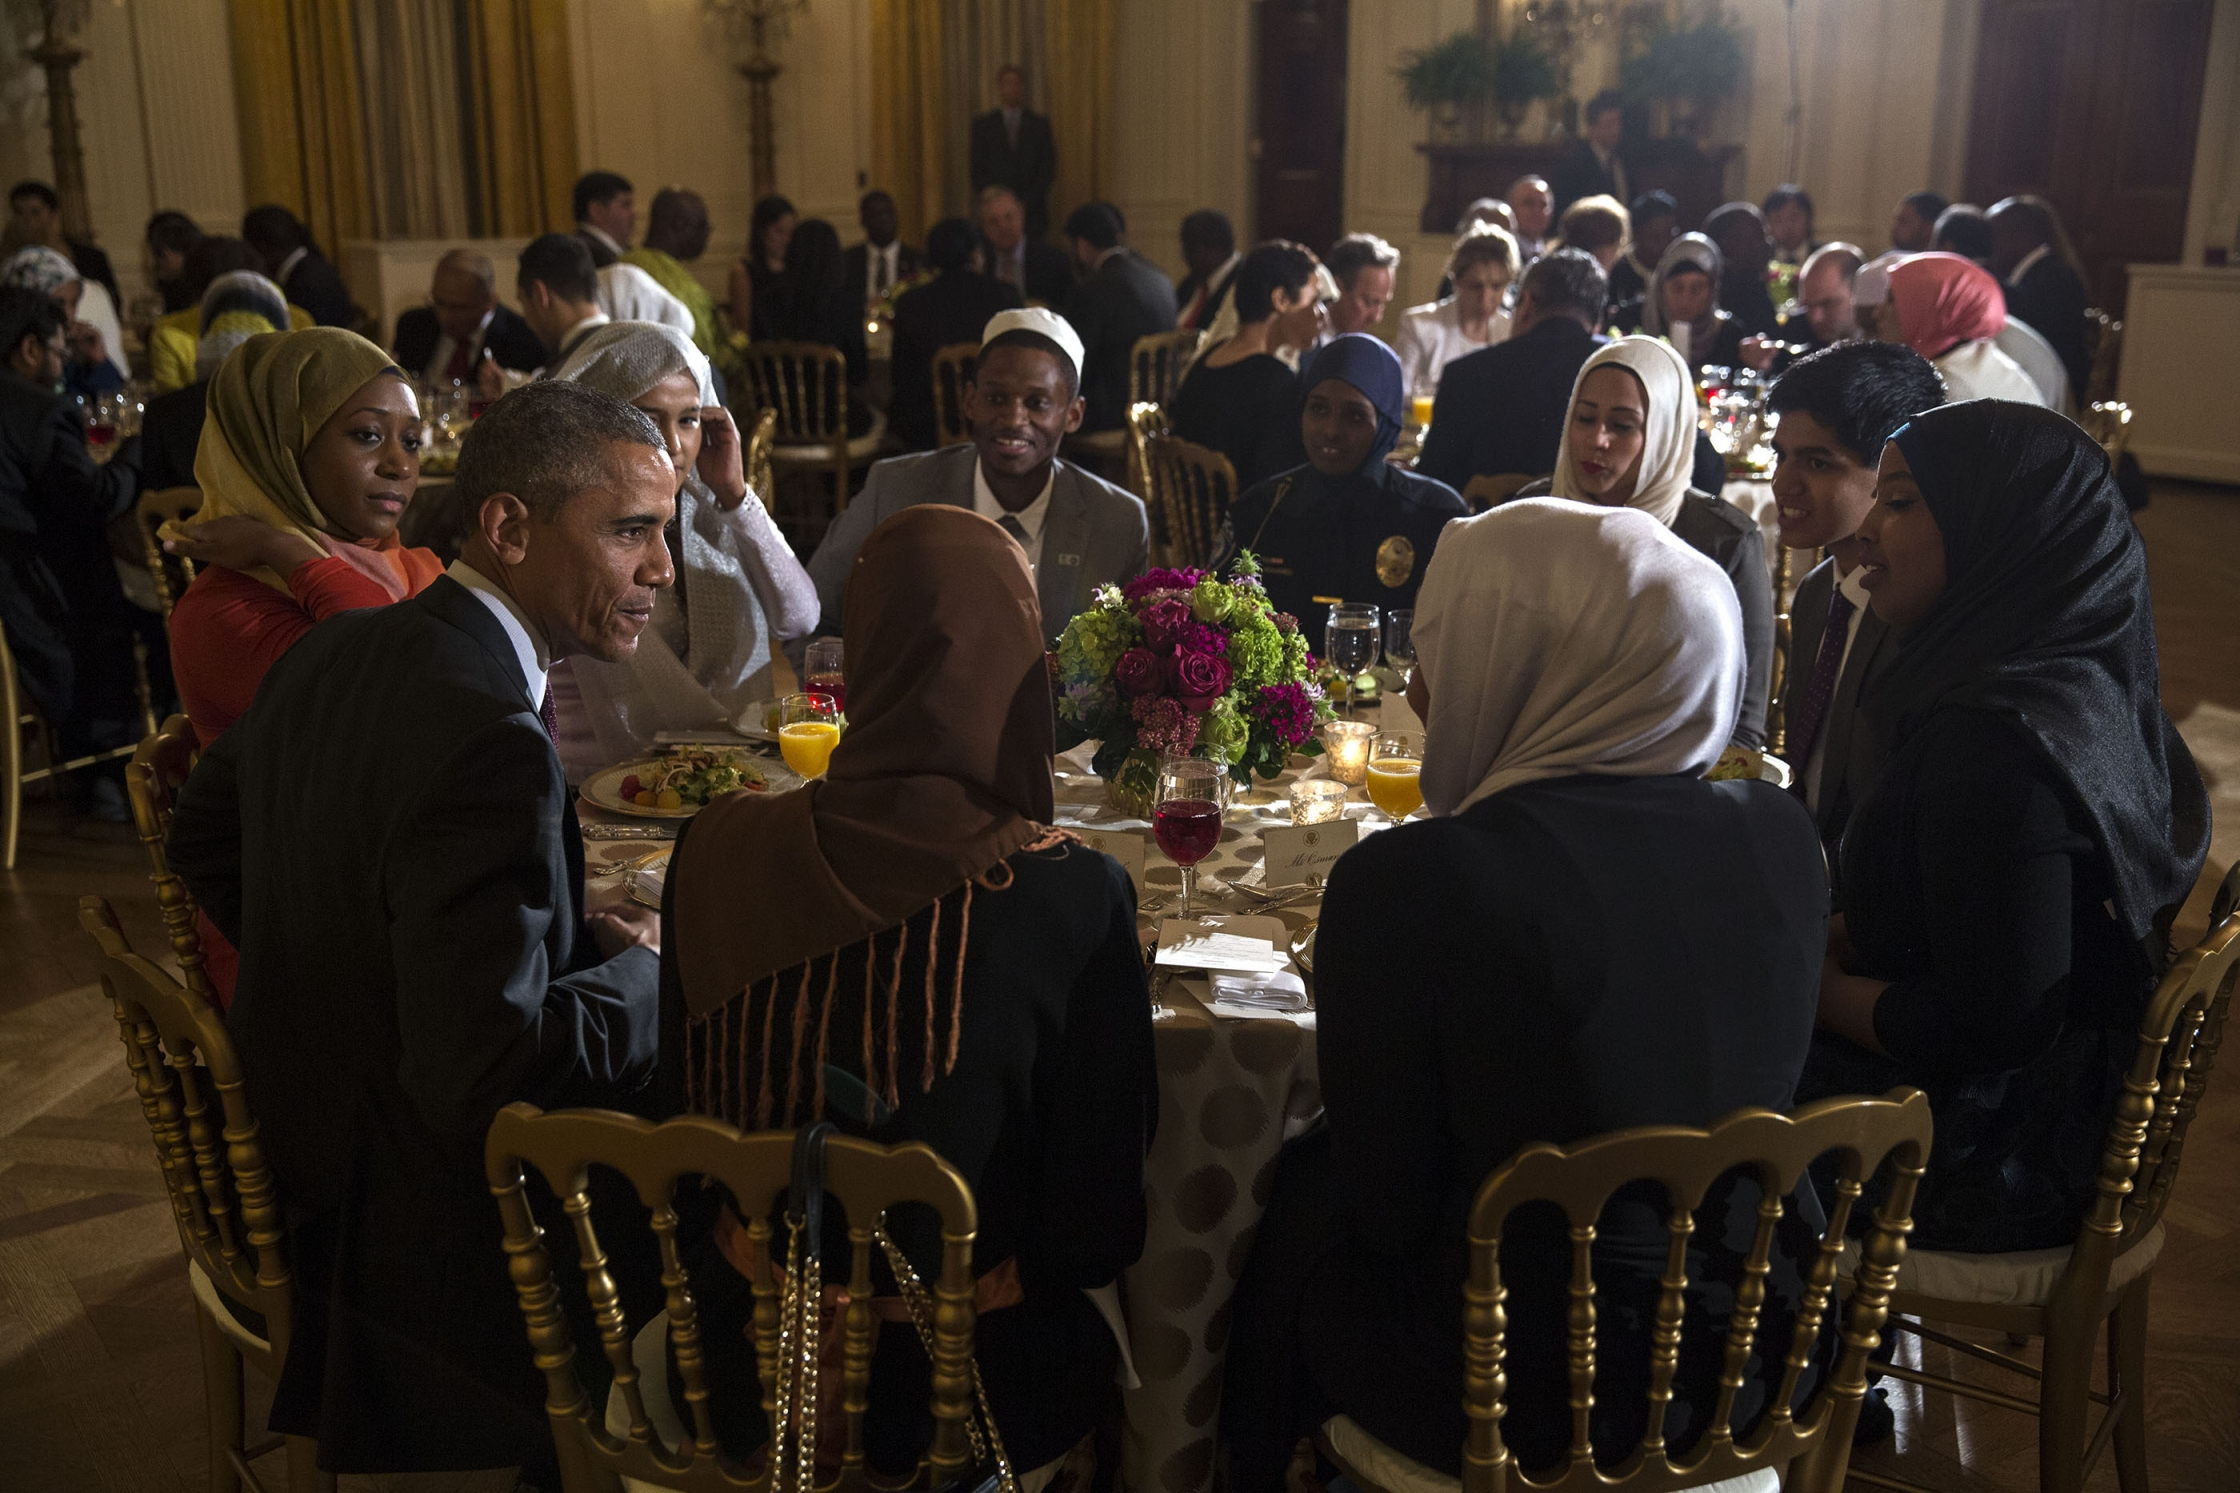 Letters to the president reflections on growing up as muslim president barack obama hosts an iftar dinner celebrating ramadan kristyandbryce Images